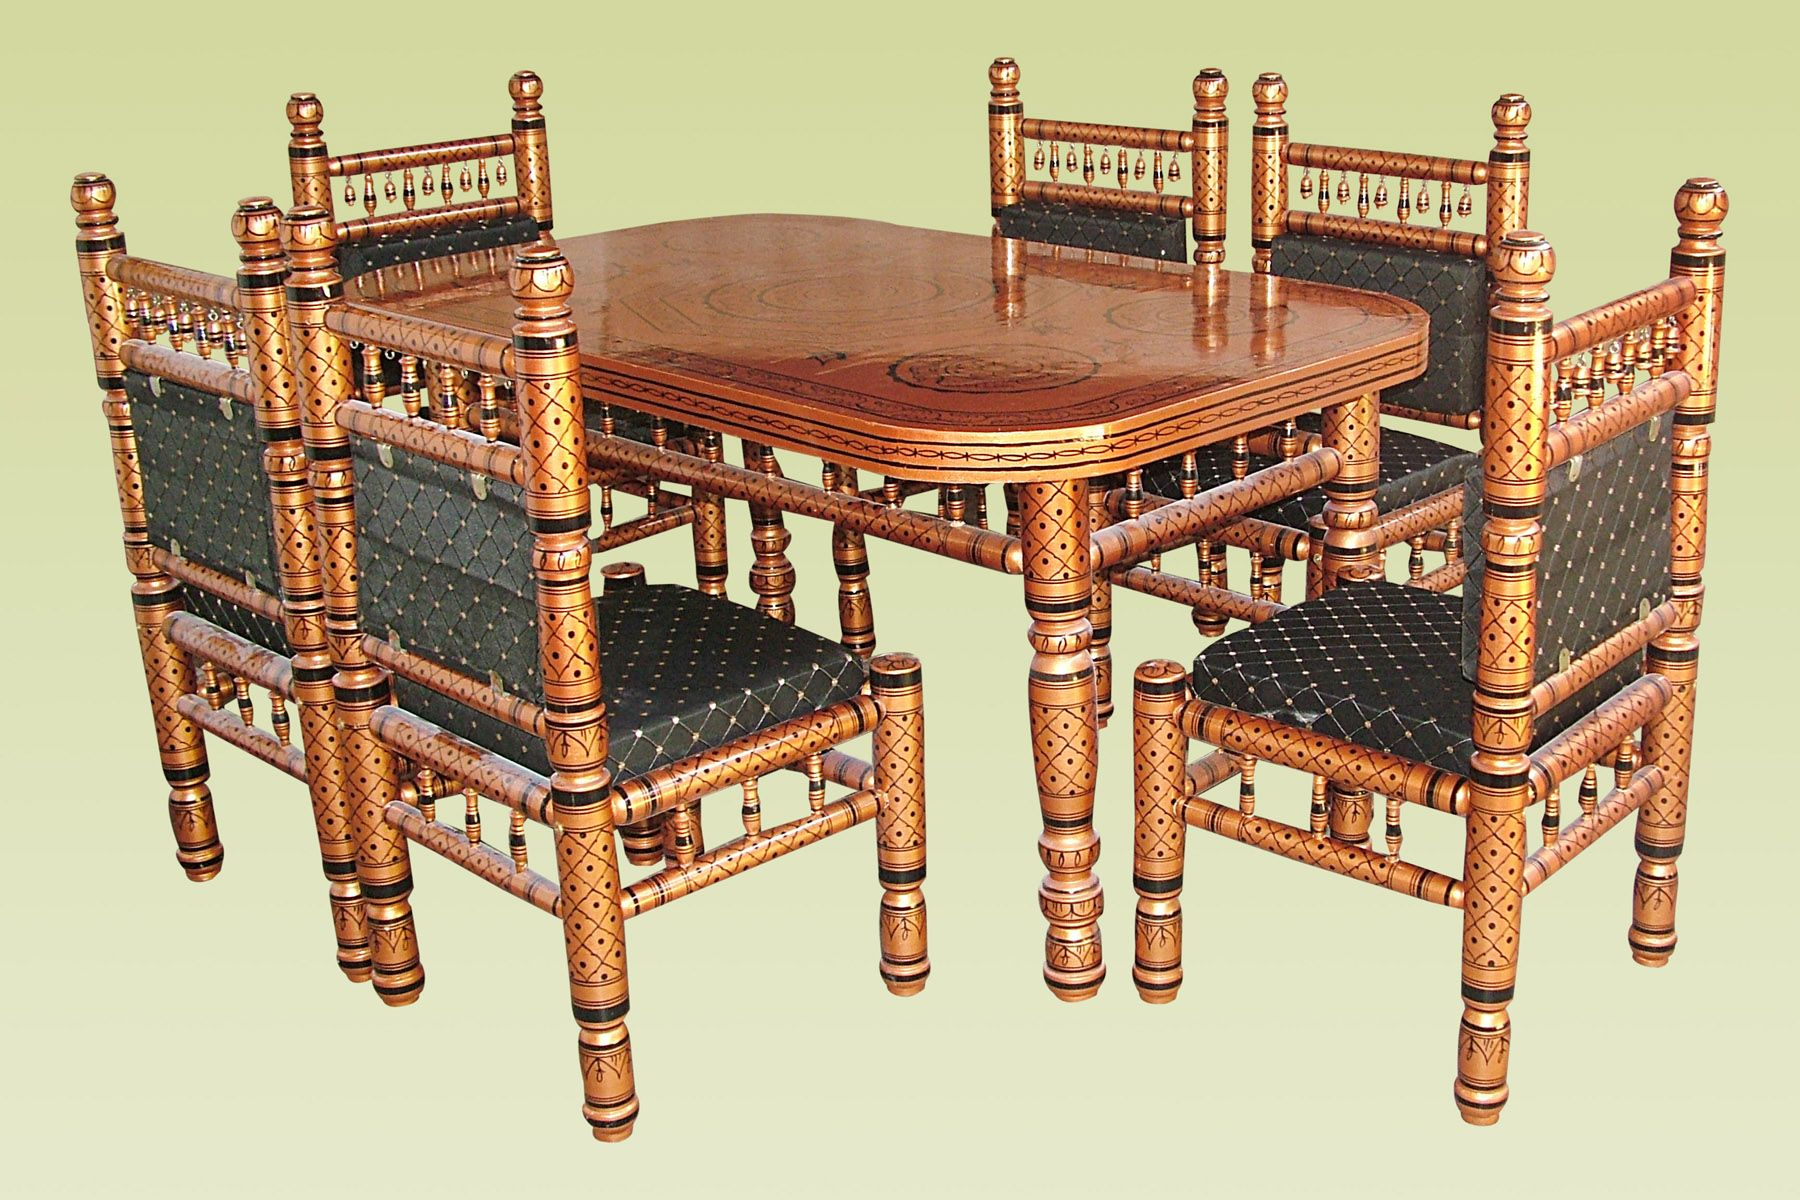 punjabi dining table furniture design ideas  places to visit  - punjabi dining table furniture design ideas